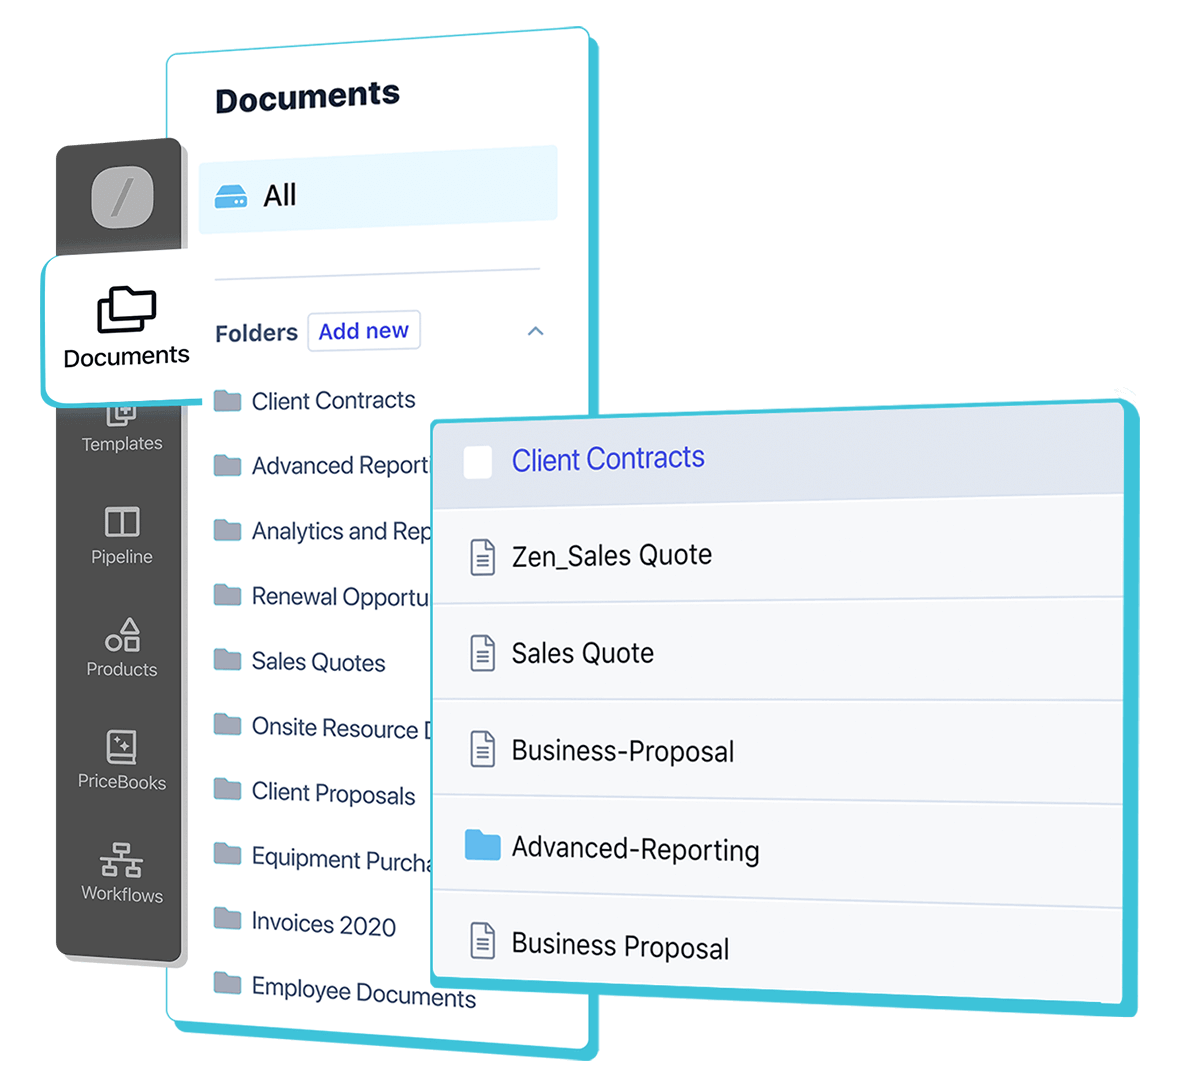 Store and organize your business documents for quick access in Folders in Revv, your next gen document builder.